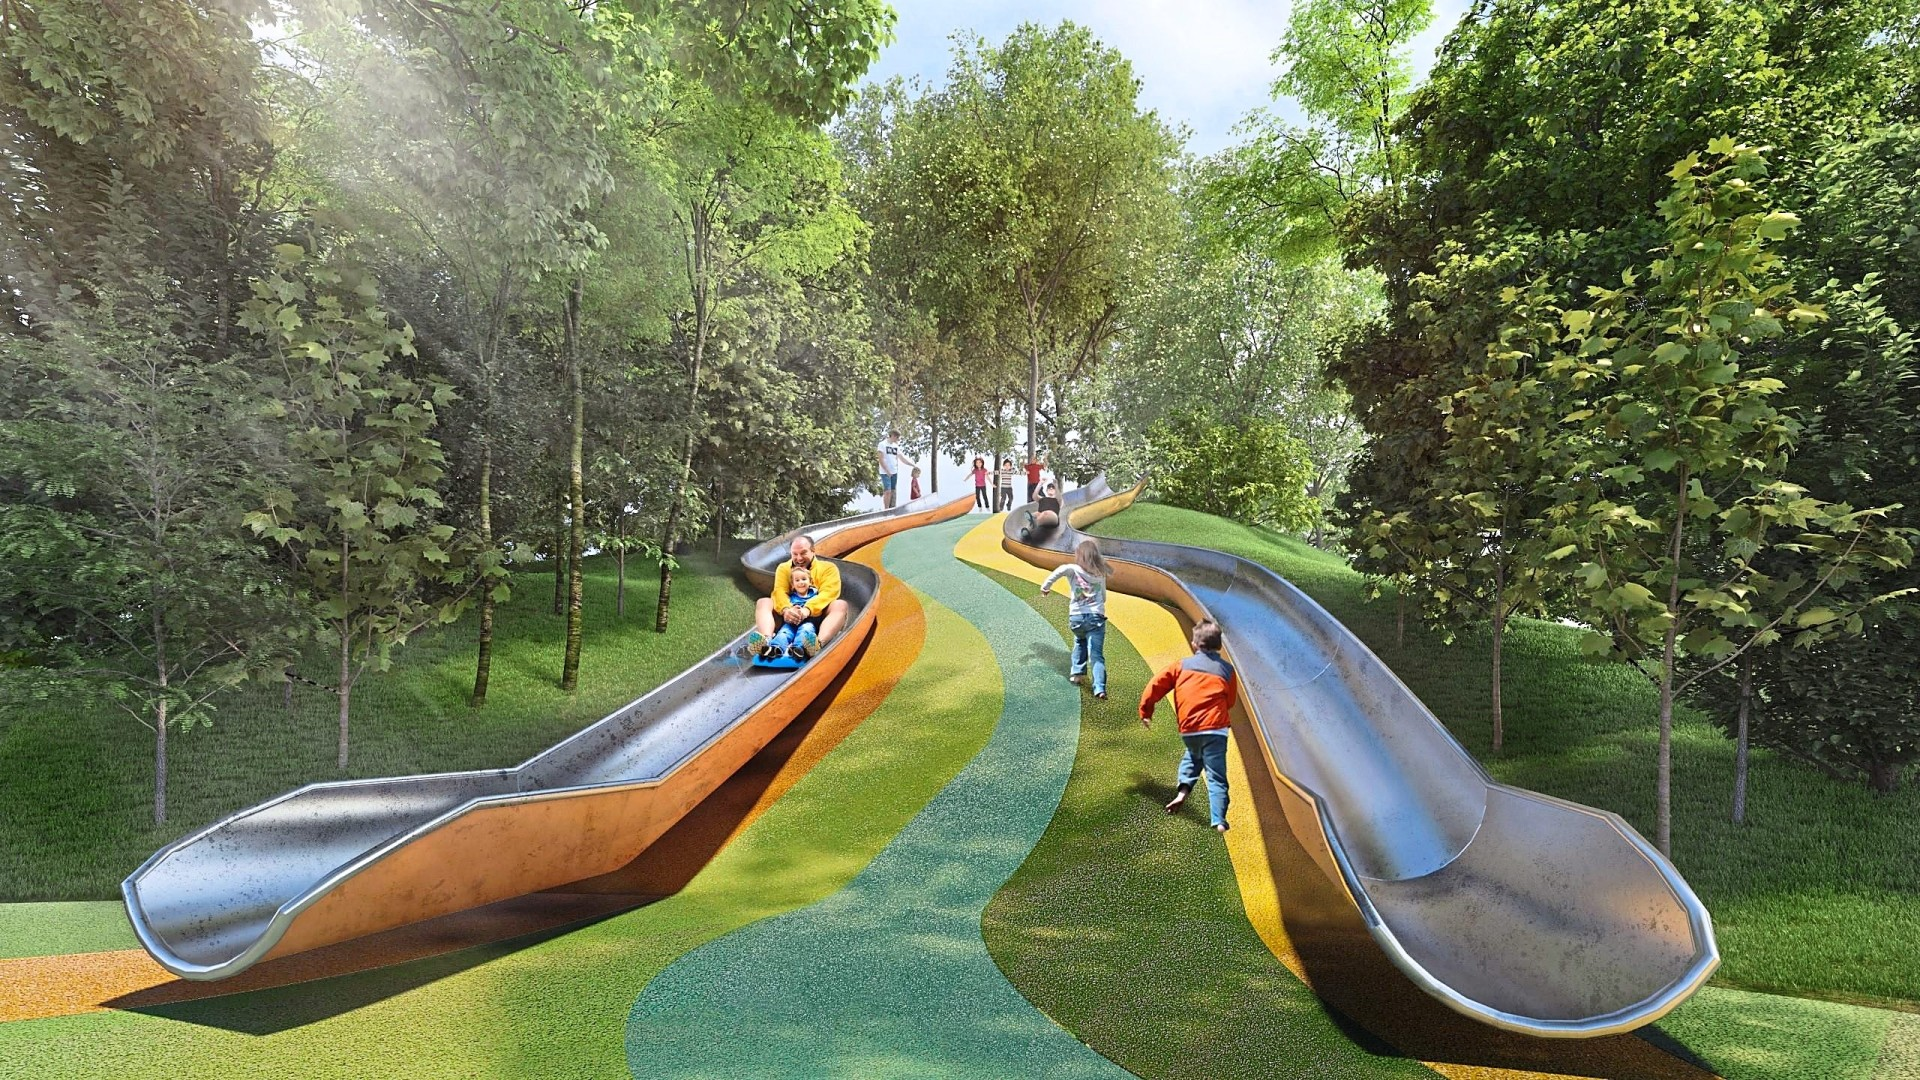 Nestled among the natural landscapes, the Central Park will be the main community gather place with facilities such as these giant slides conducive for outdoor activities.